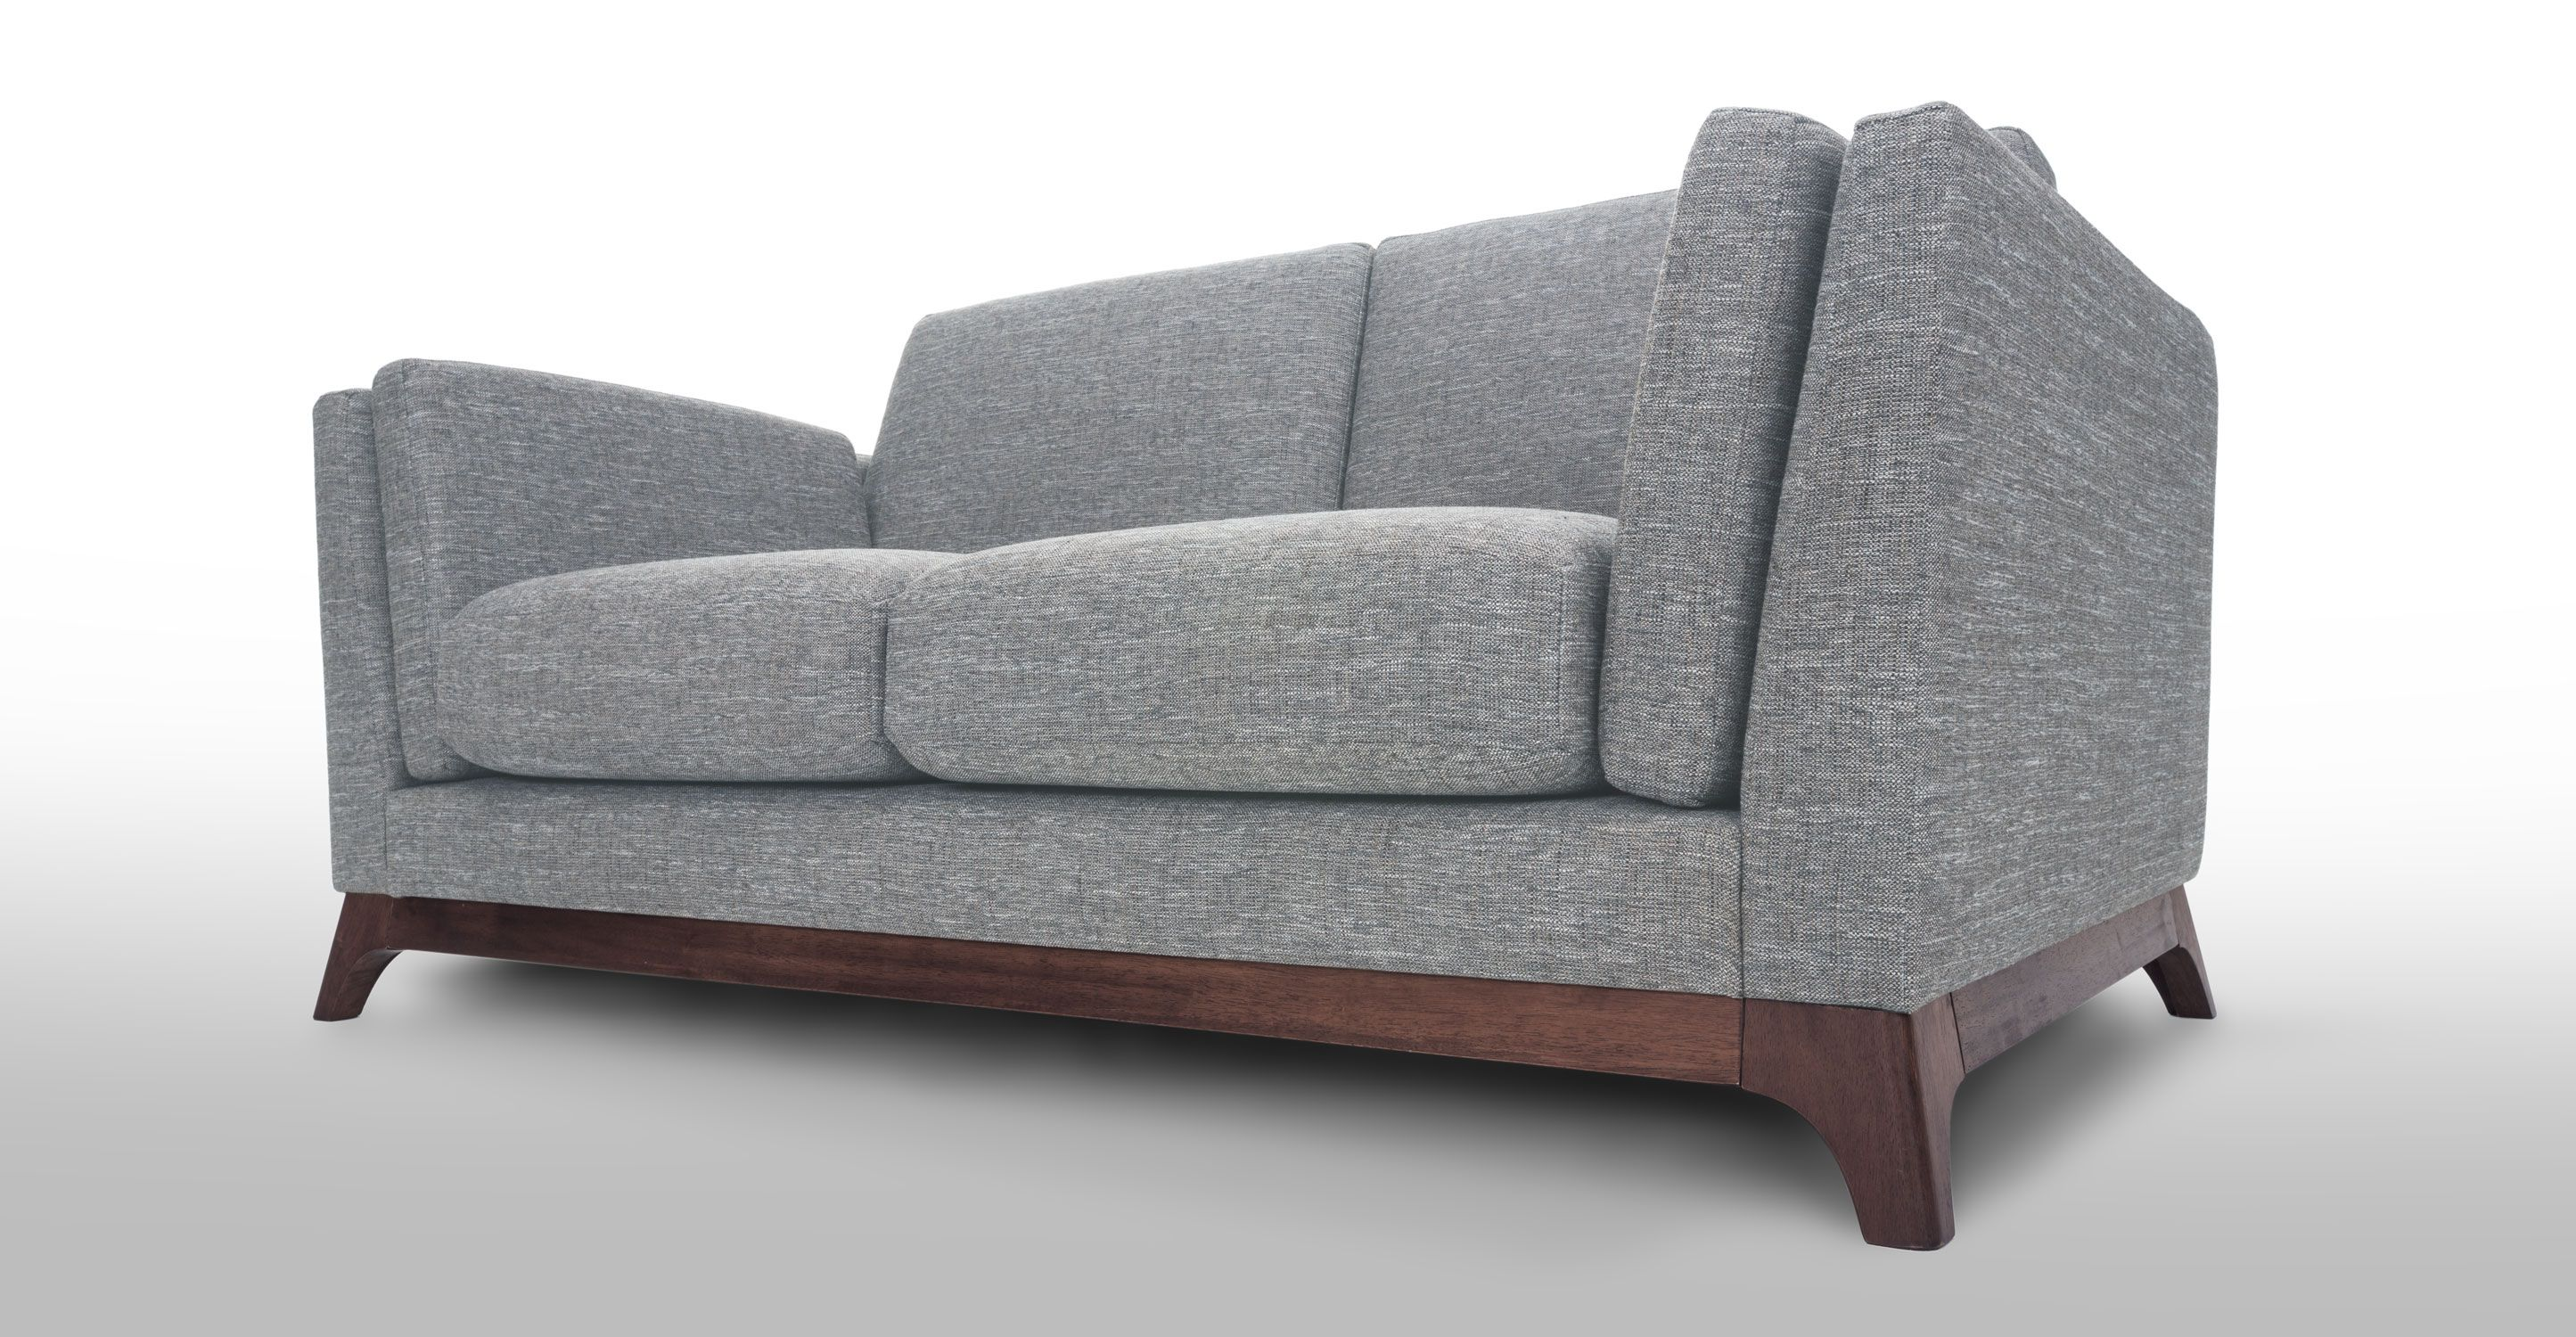 gray loveseat with solid wood legs  article ceni modern furniture  - gray loveseat with solid wood legs  article ceni modern furniture